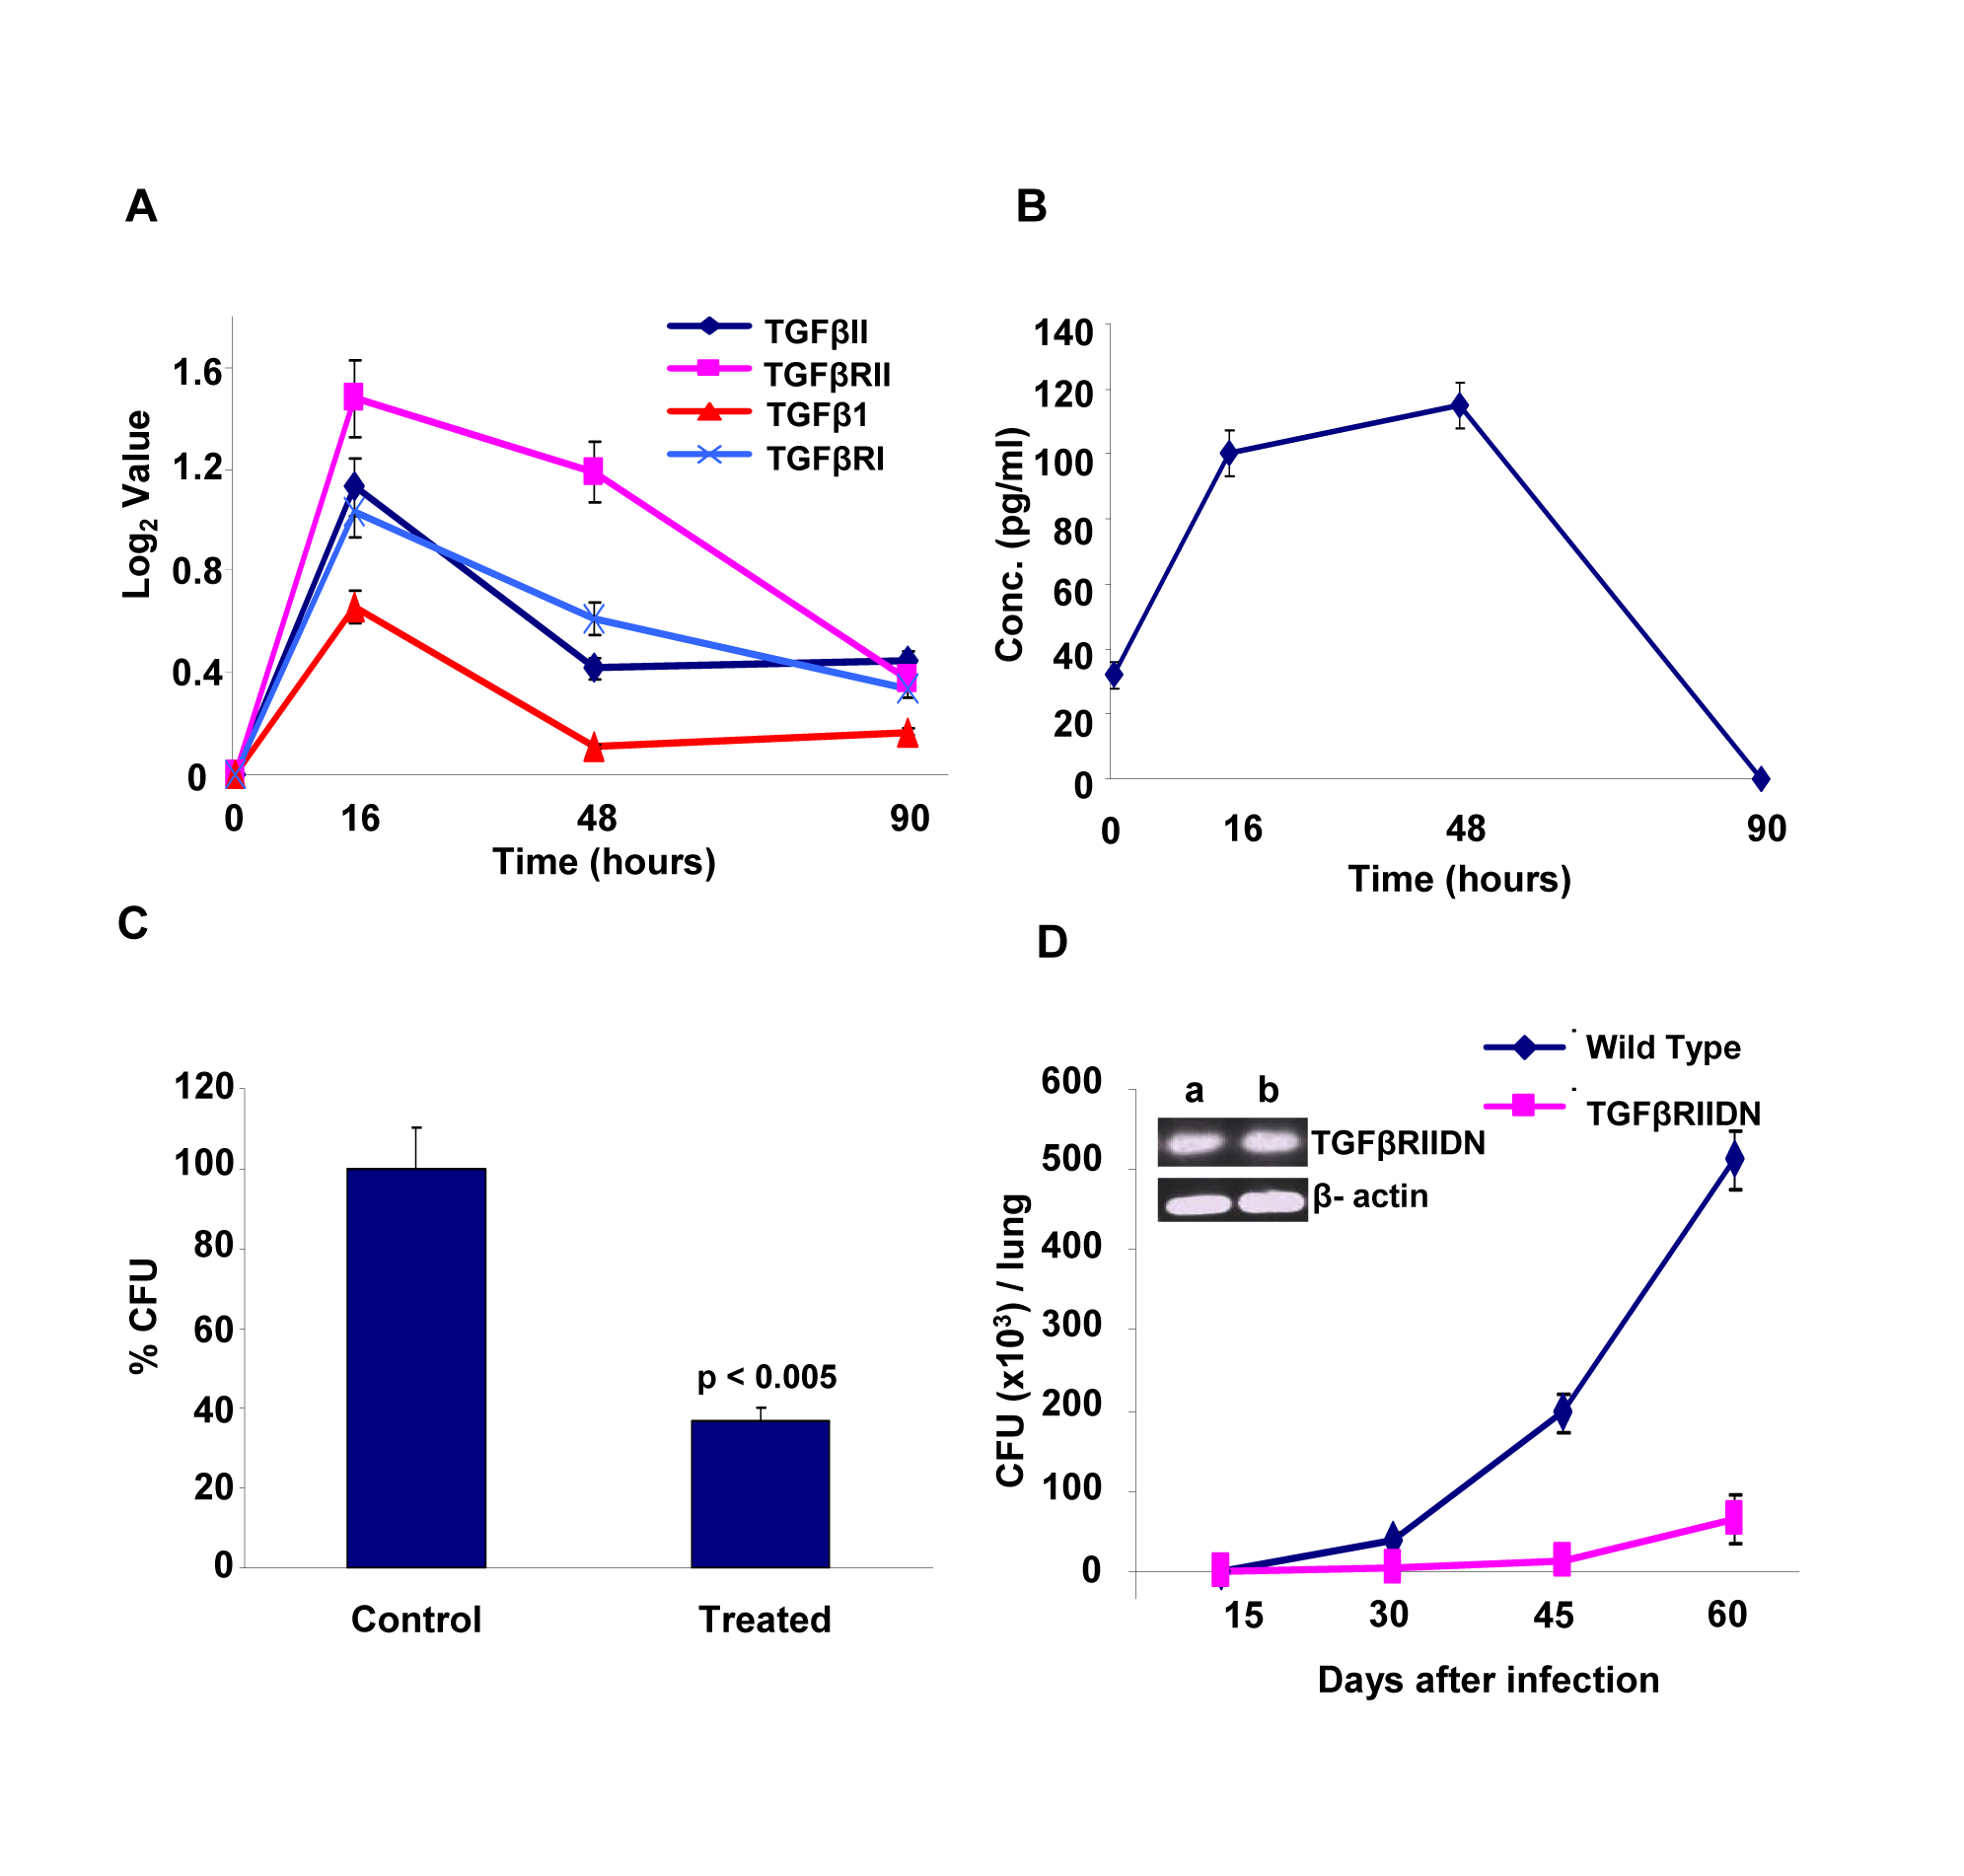 Mtb infection regulates levels of TGFβ and its receptor in host cells.